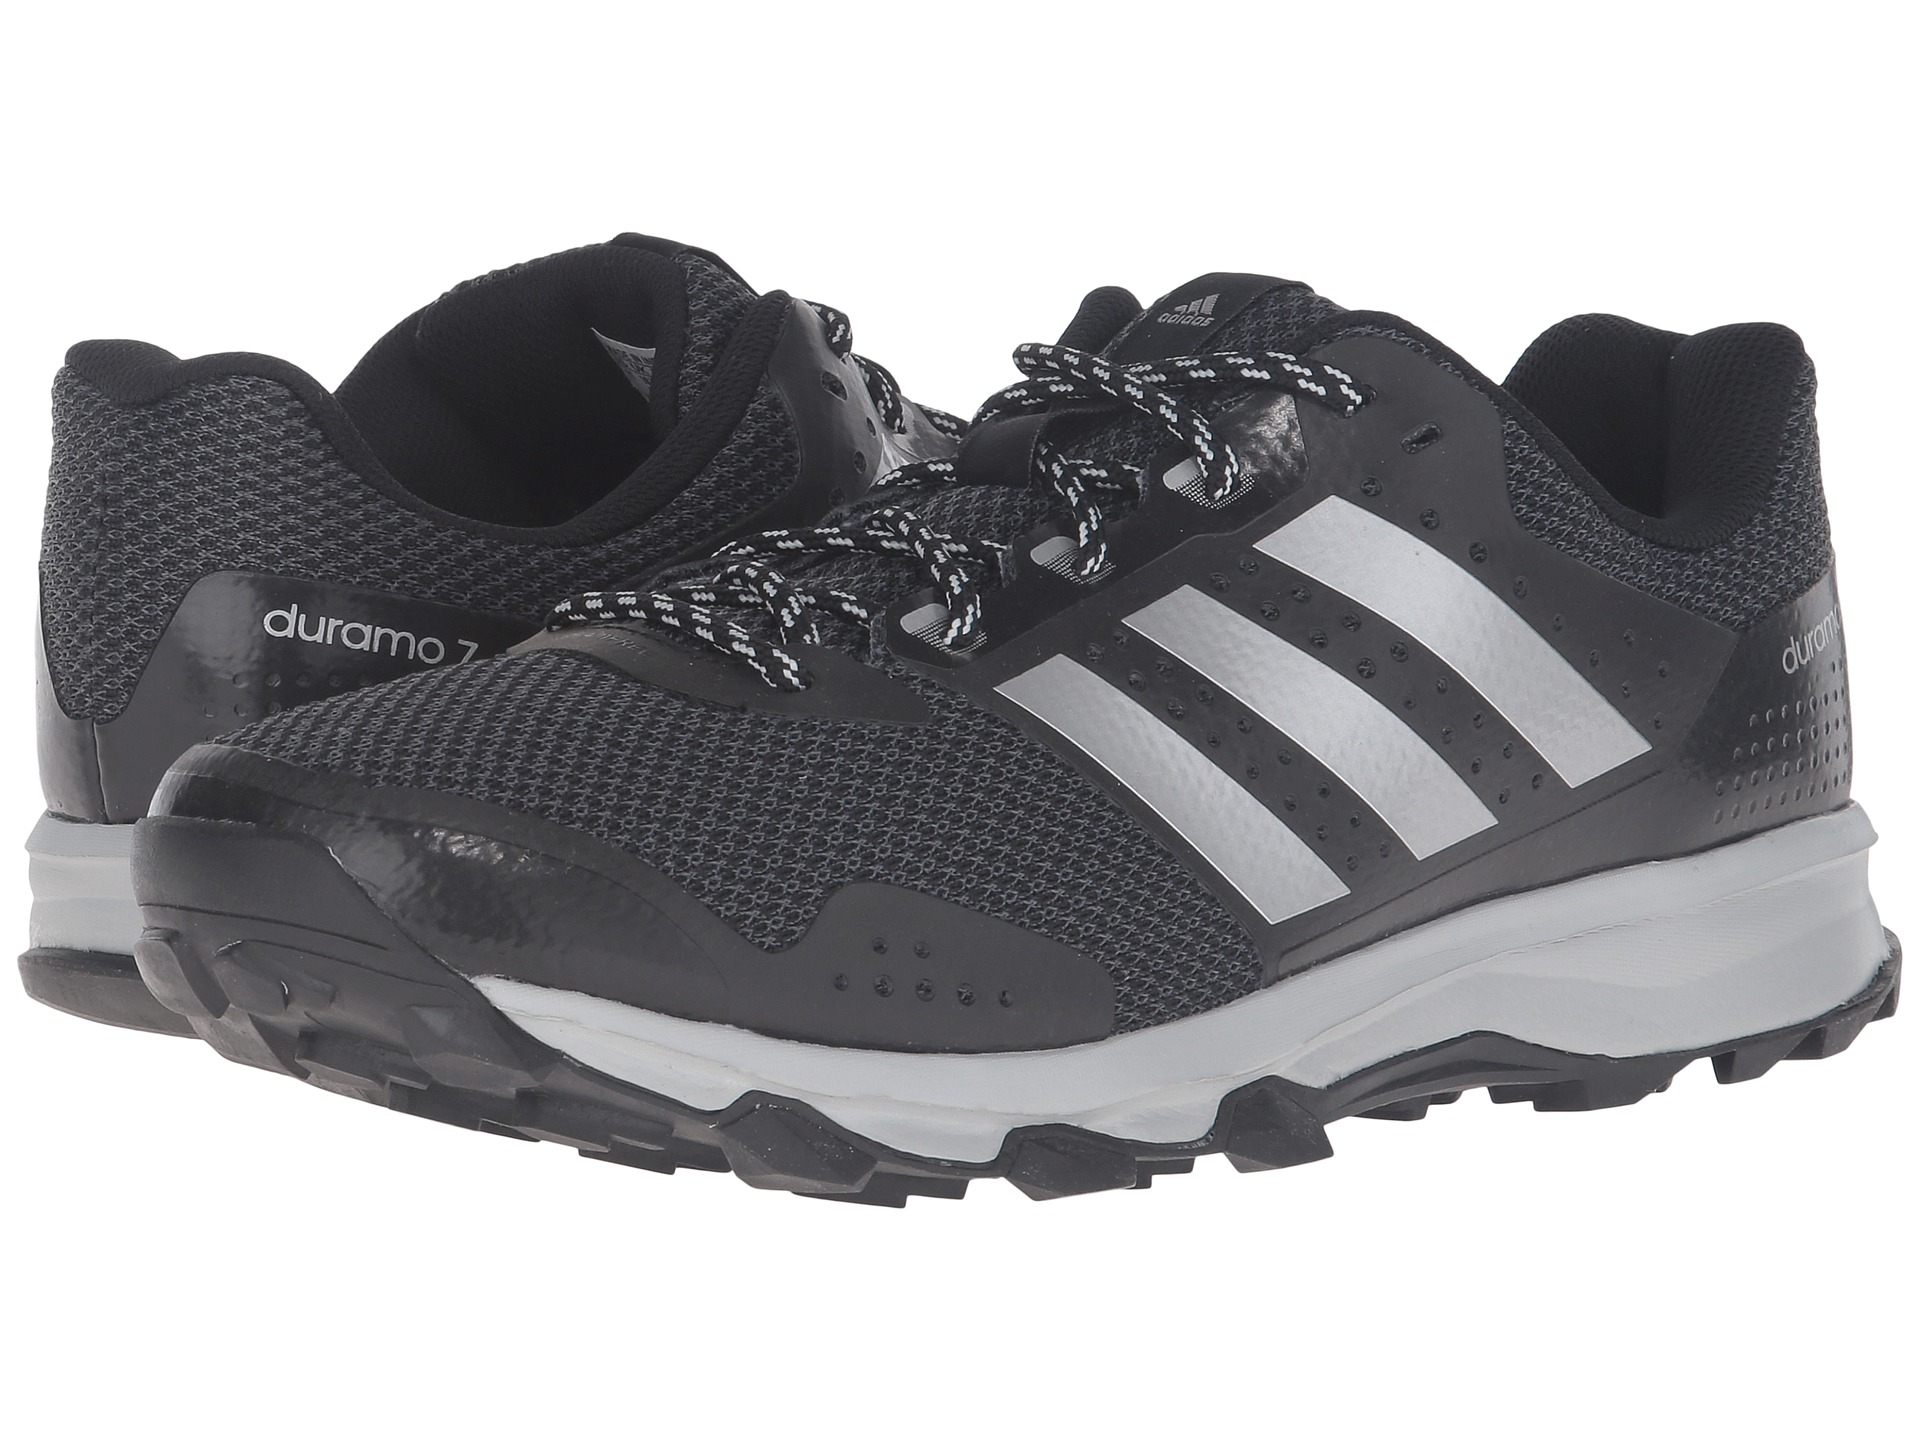 adidas Duramo 7 Trail at 6pm.com